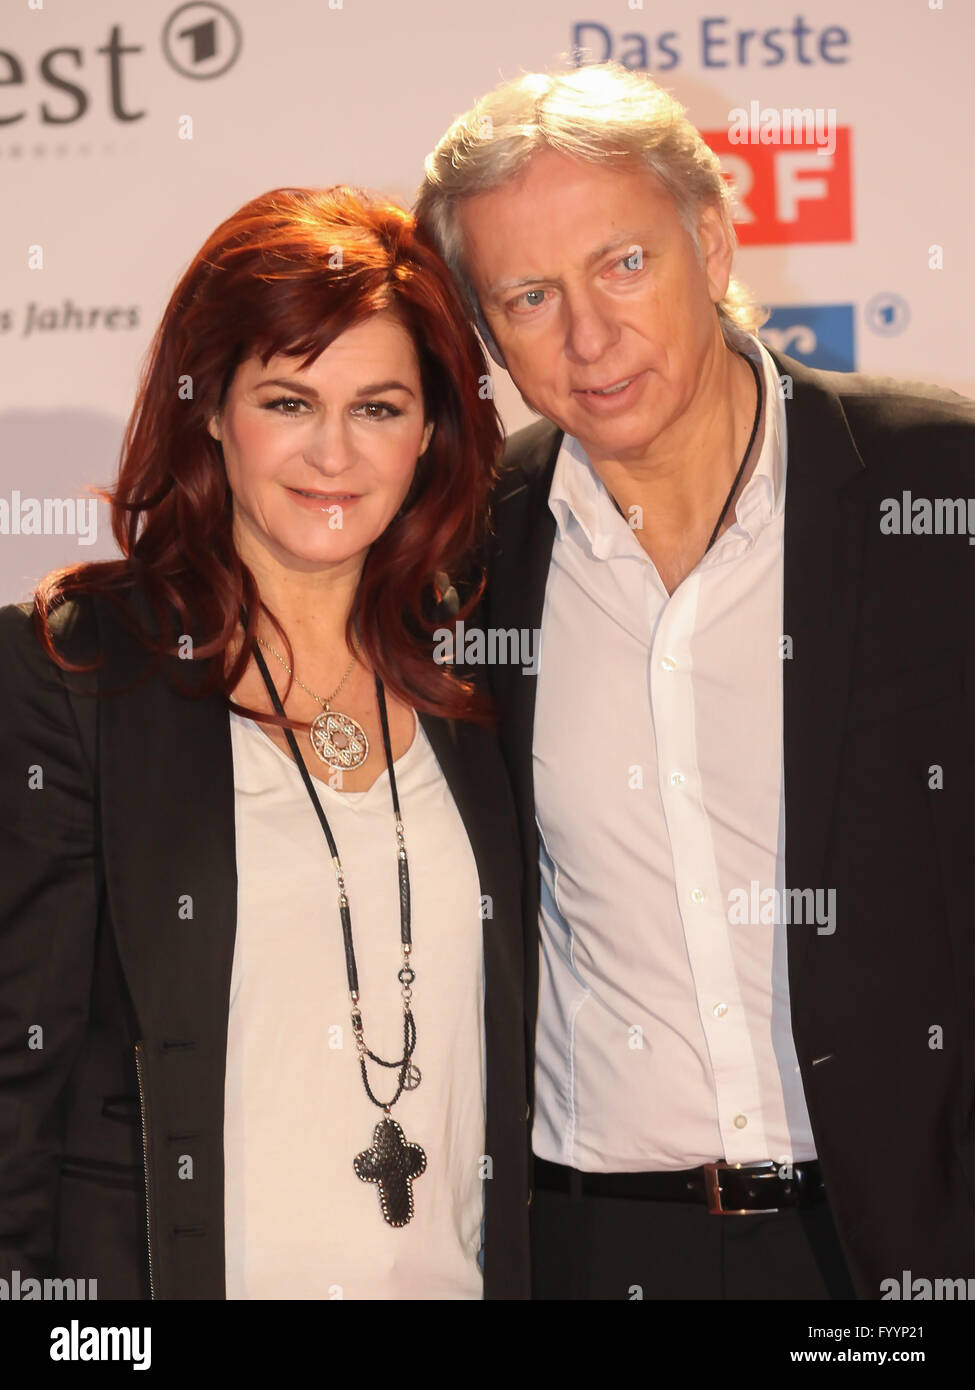 Andrea berg 2016 hd image free - Singer Andrea Berg And Ulrich Ferber